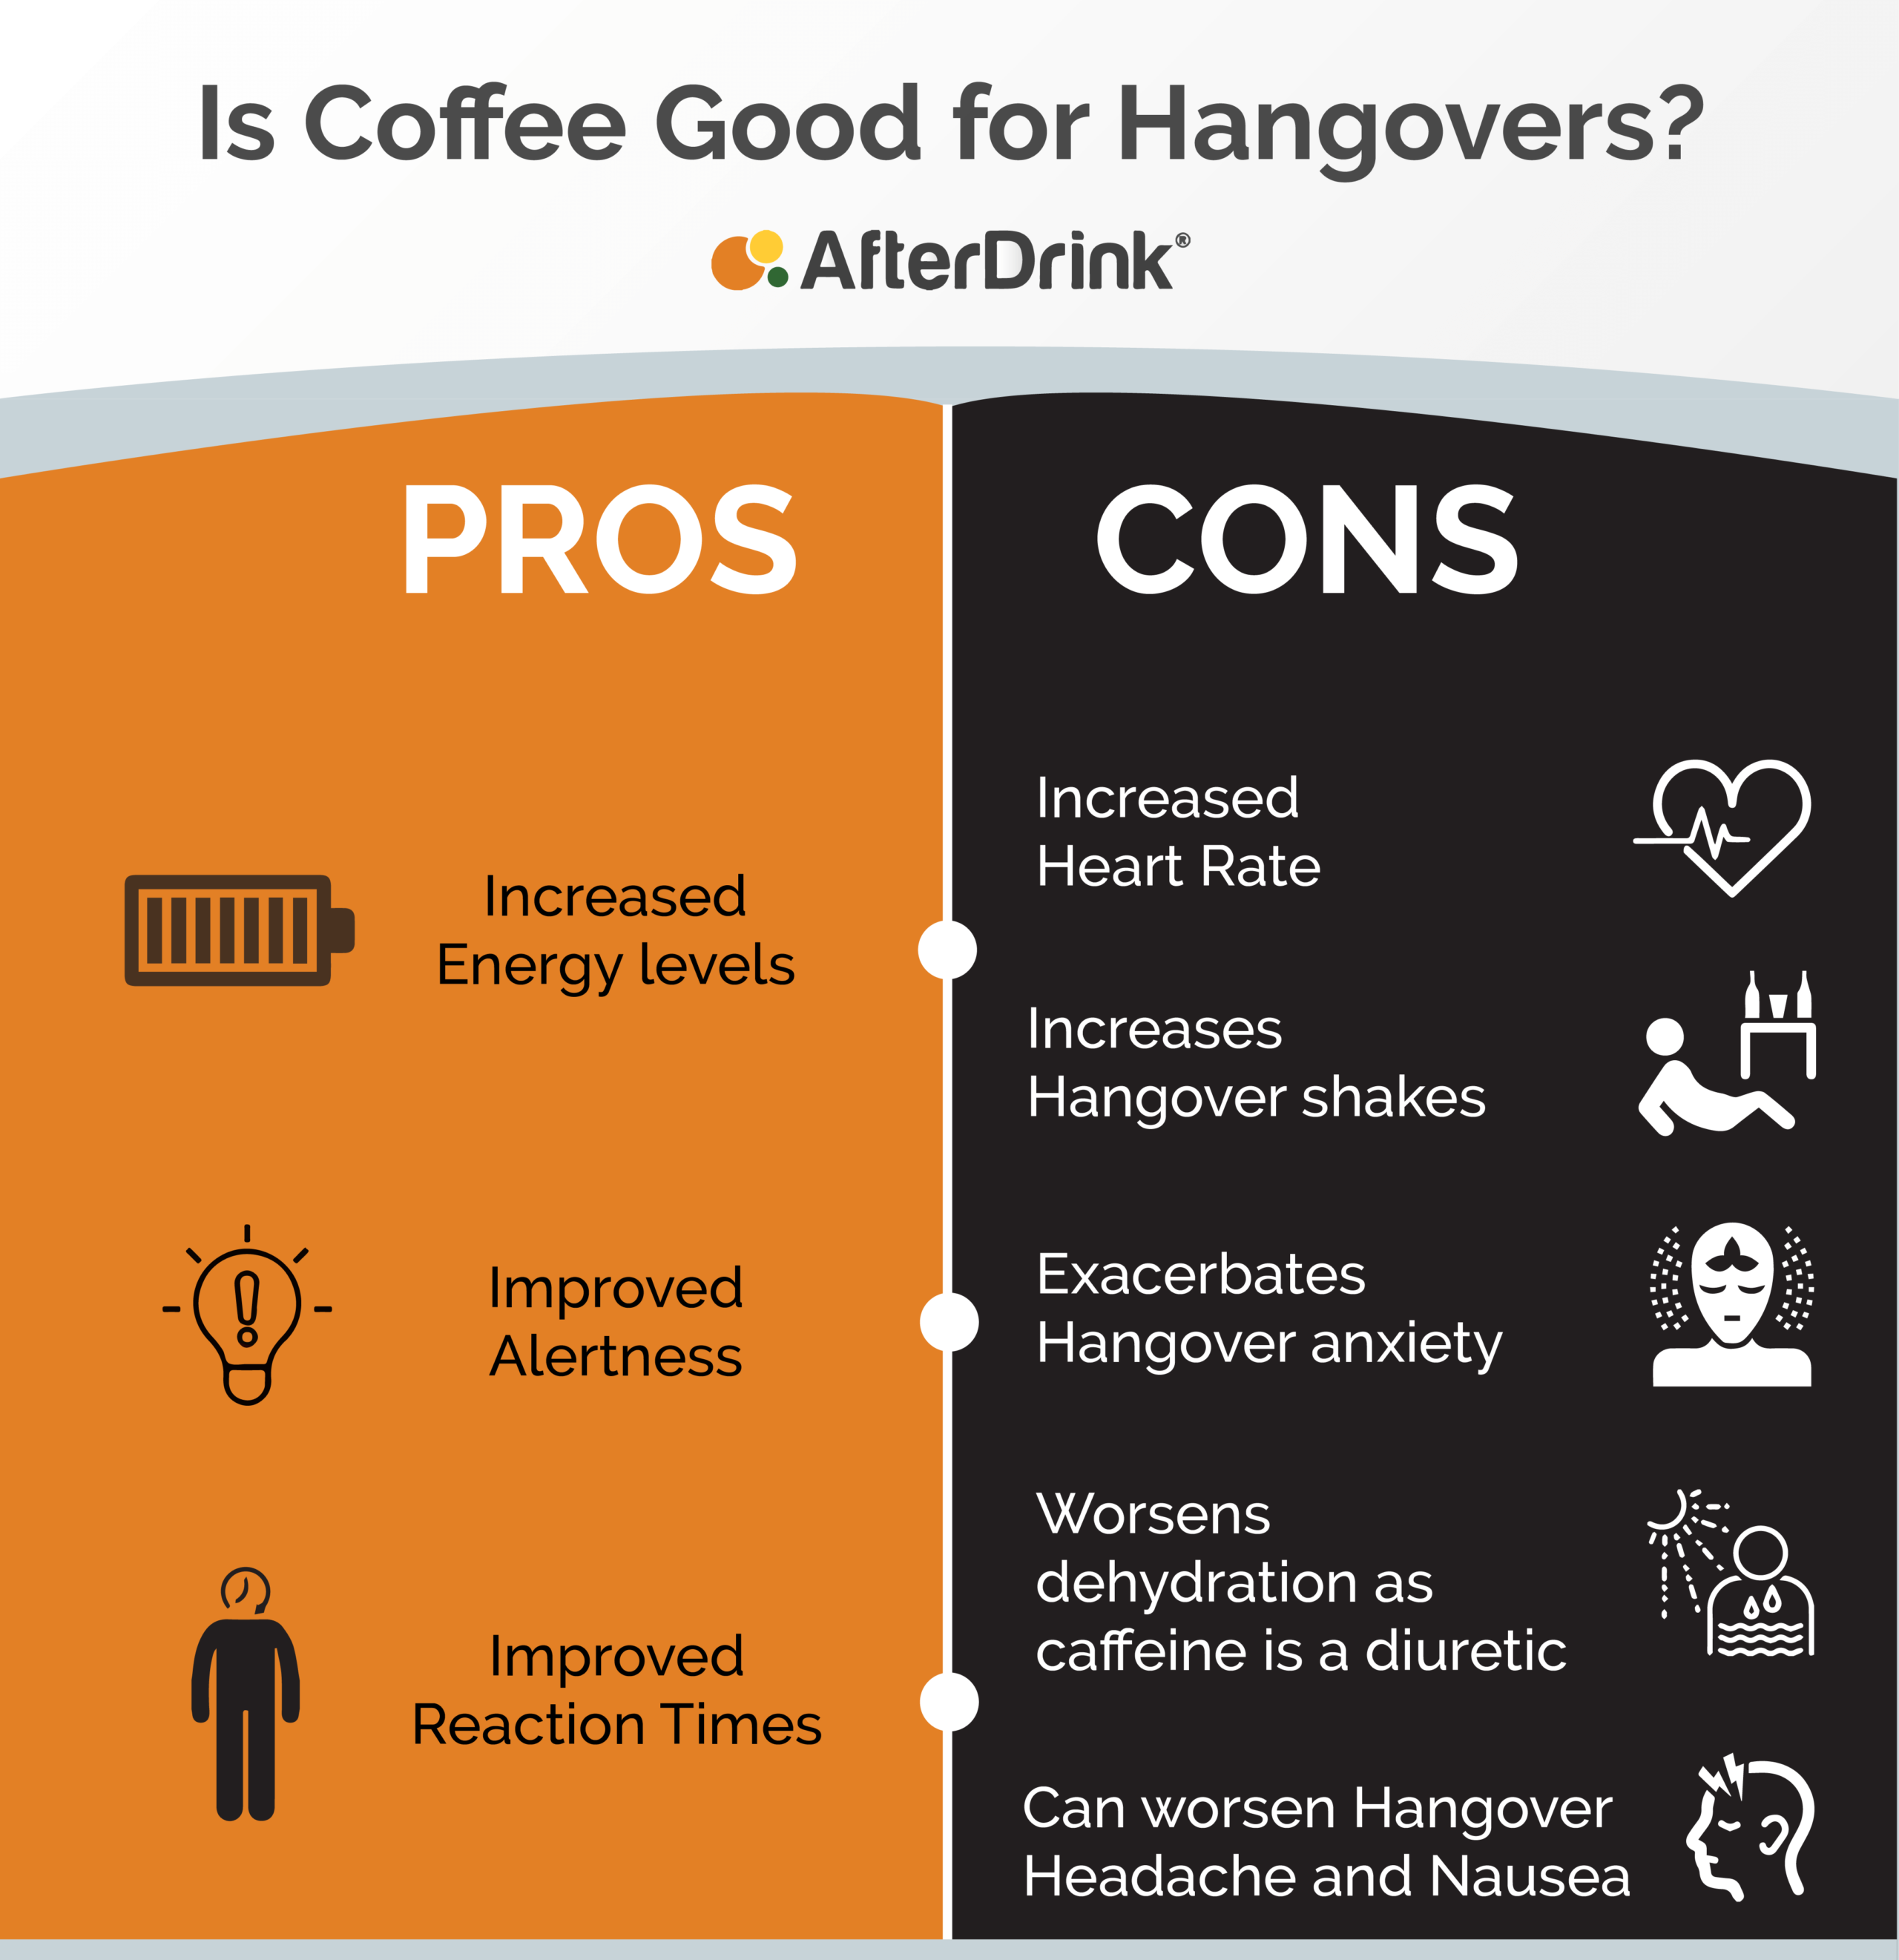 Is coffee good for hangovers infographic